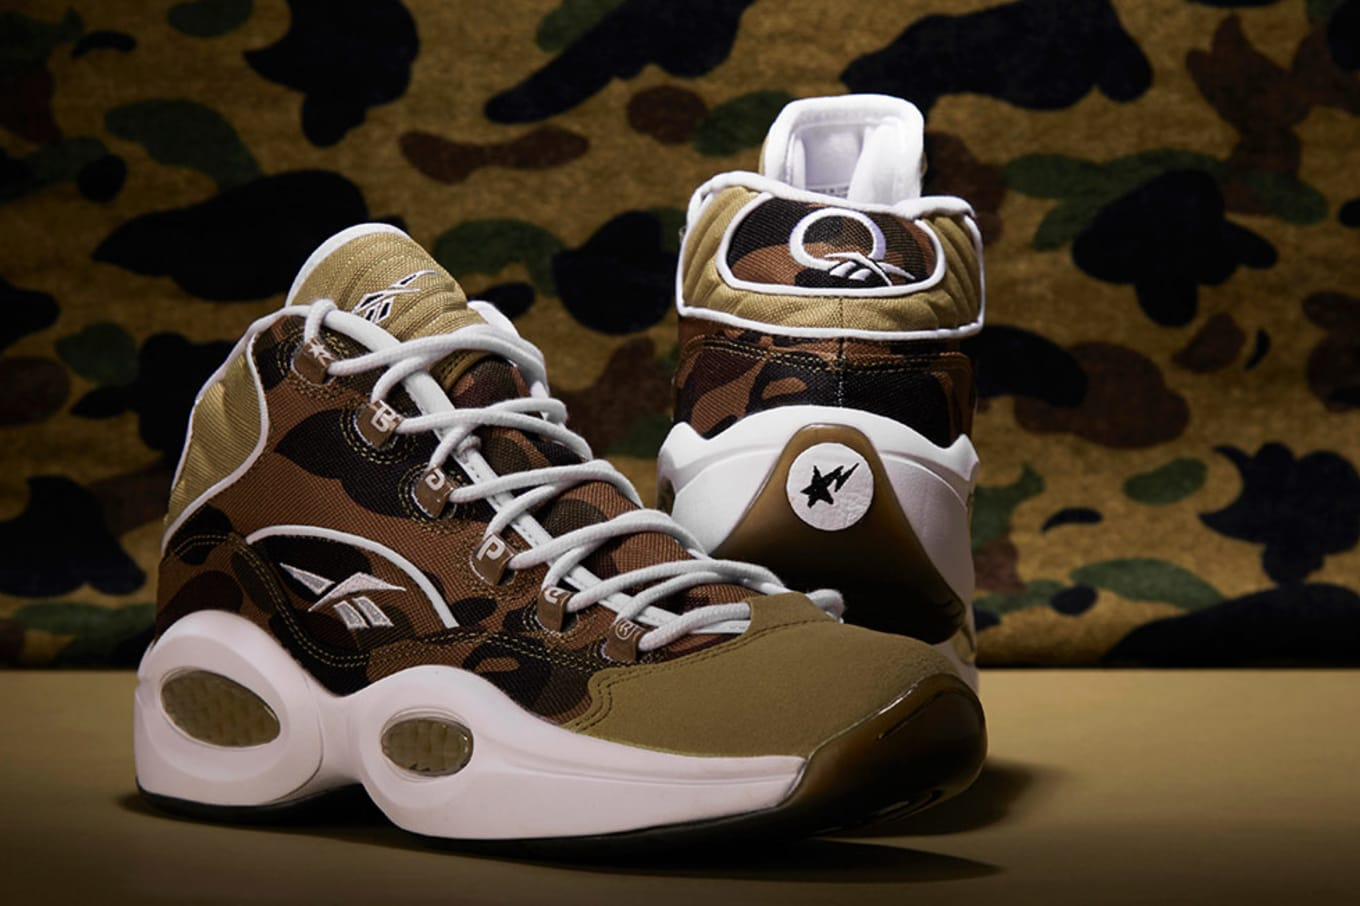 09b12d41495a Bape x Mita Sneakers x Reebok Question Mid